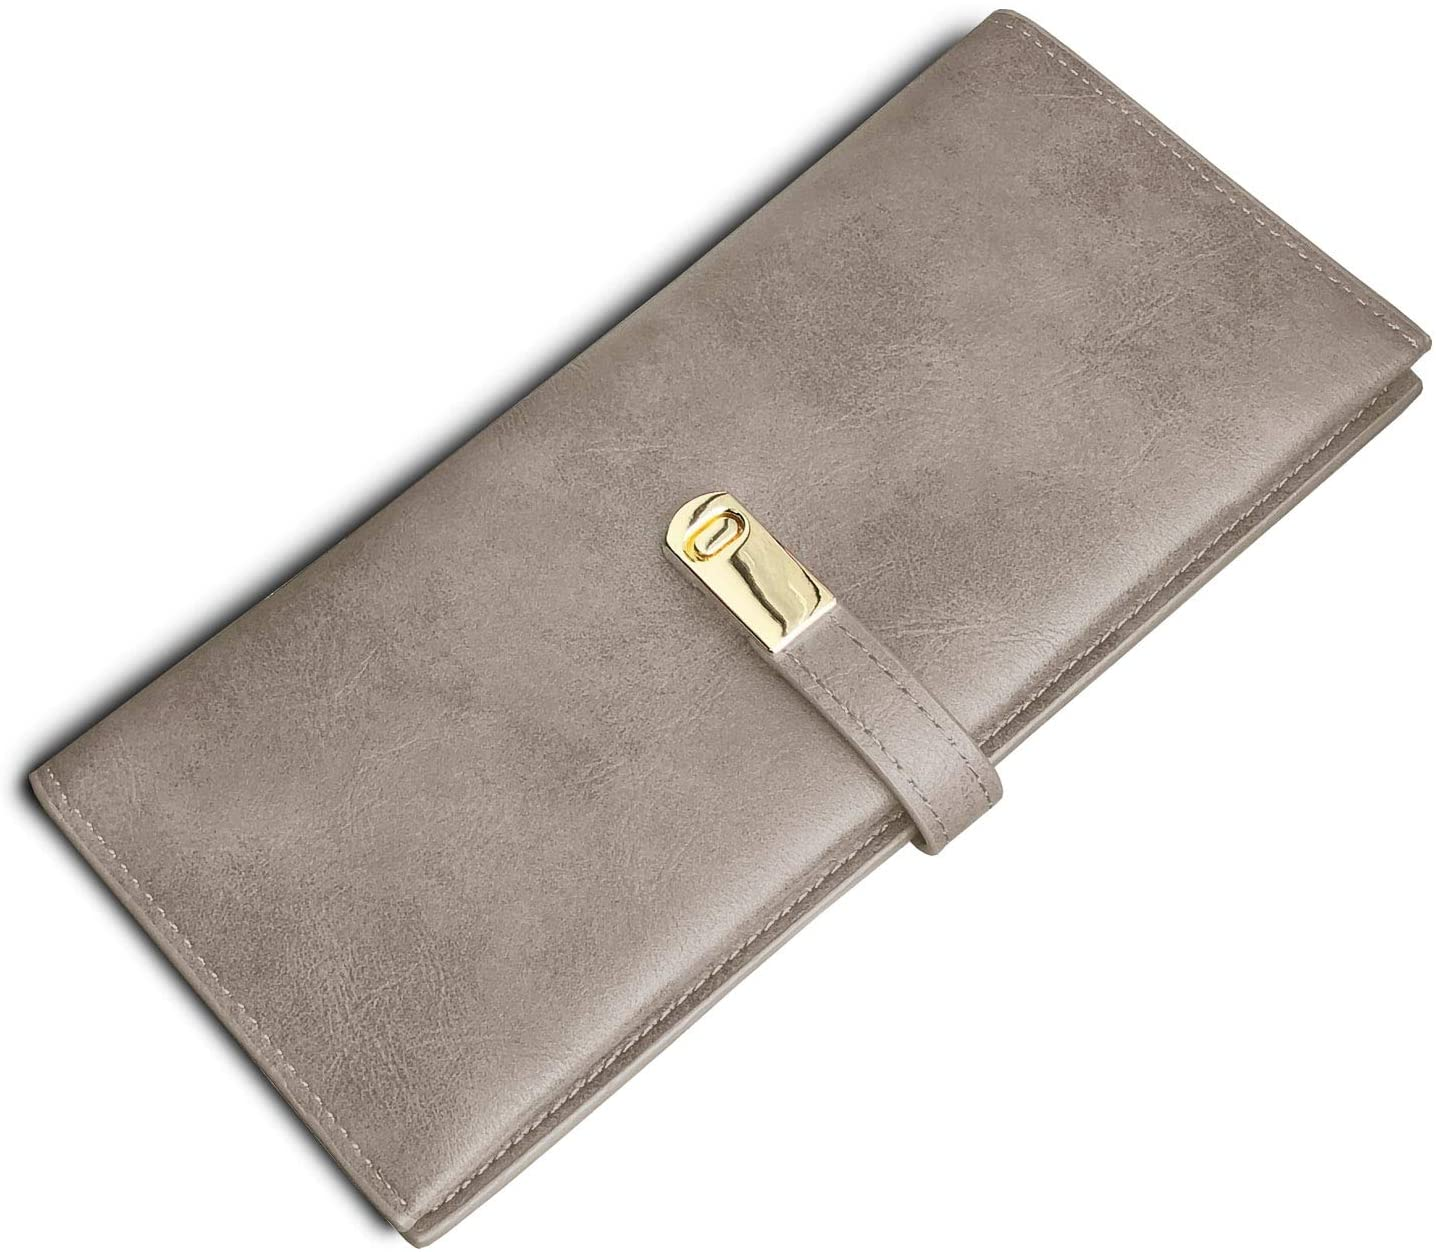 TOPKULL Ultra Slim Wallet for Women Leather,Thin Womens Wallet Billfold Skinny Rfid Ladies Wallet Large Bifold Long Card Holder Flat Coin Purse Magnetic Closure (Grey)